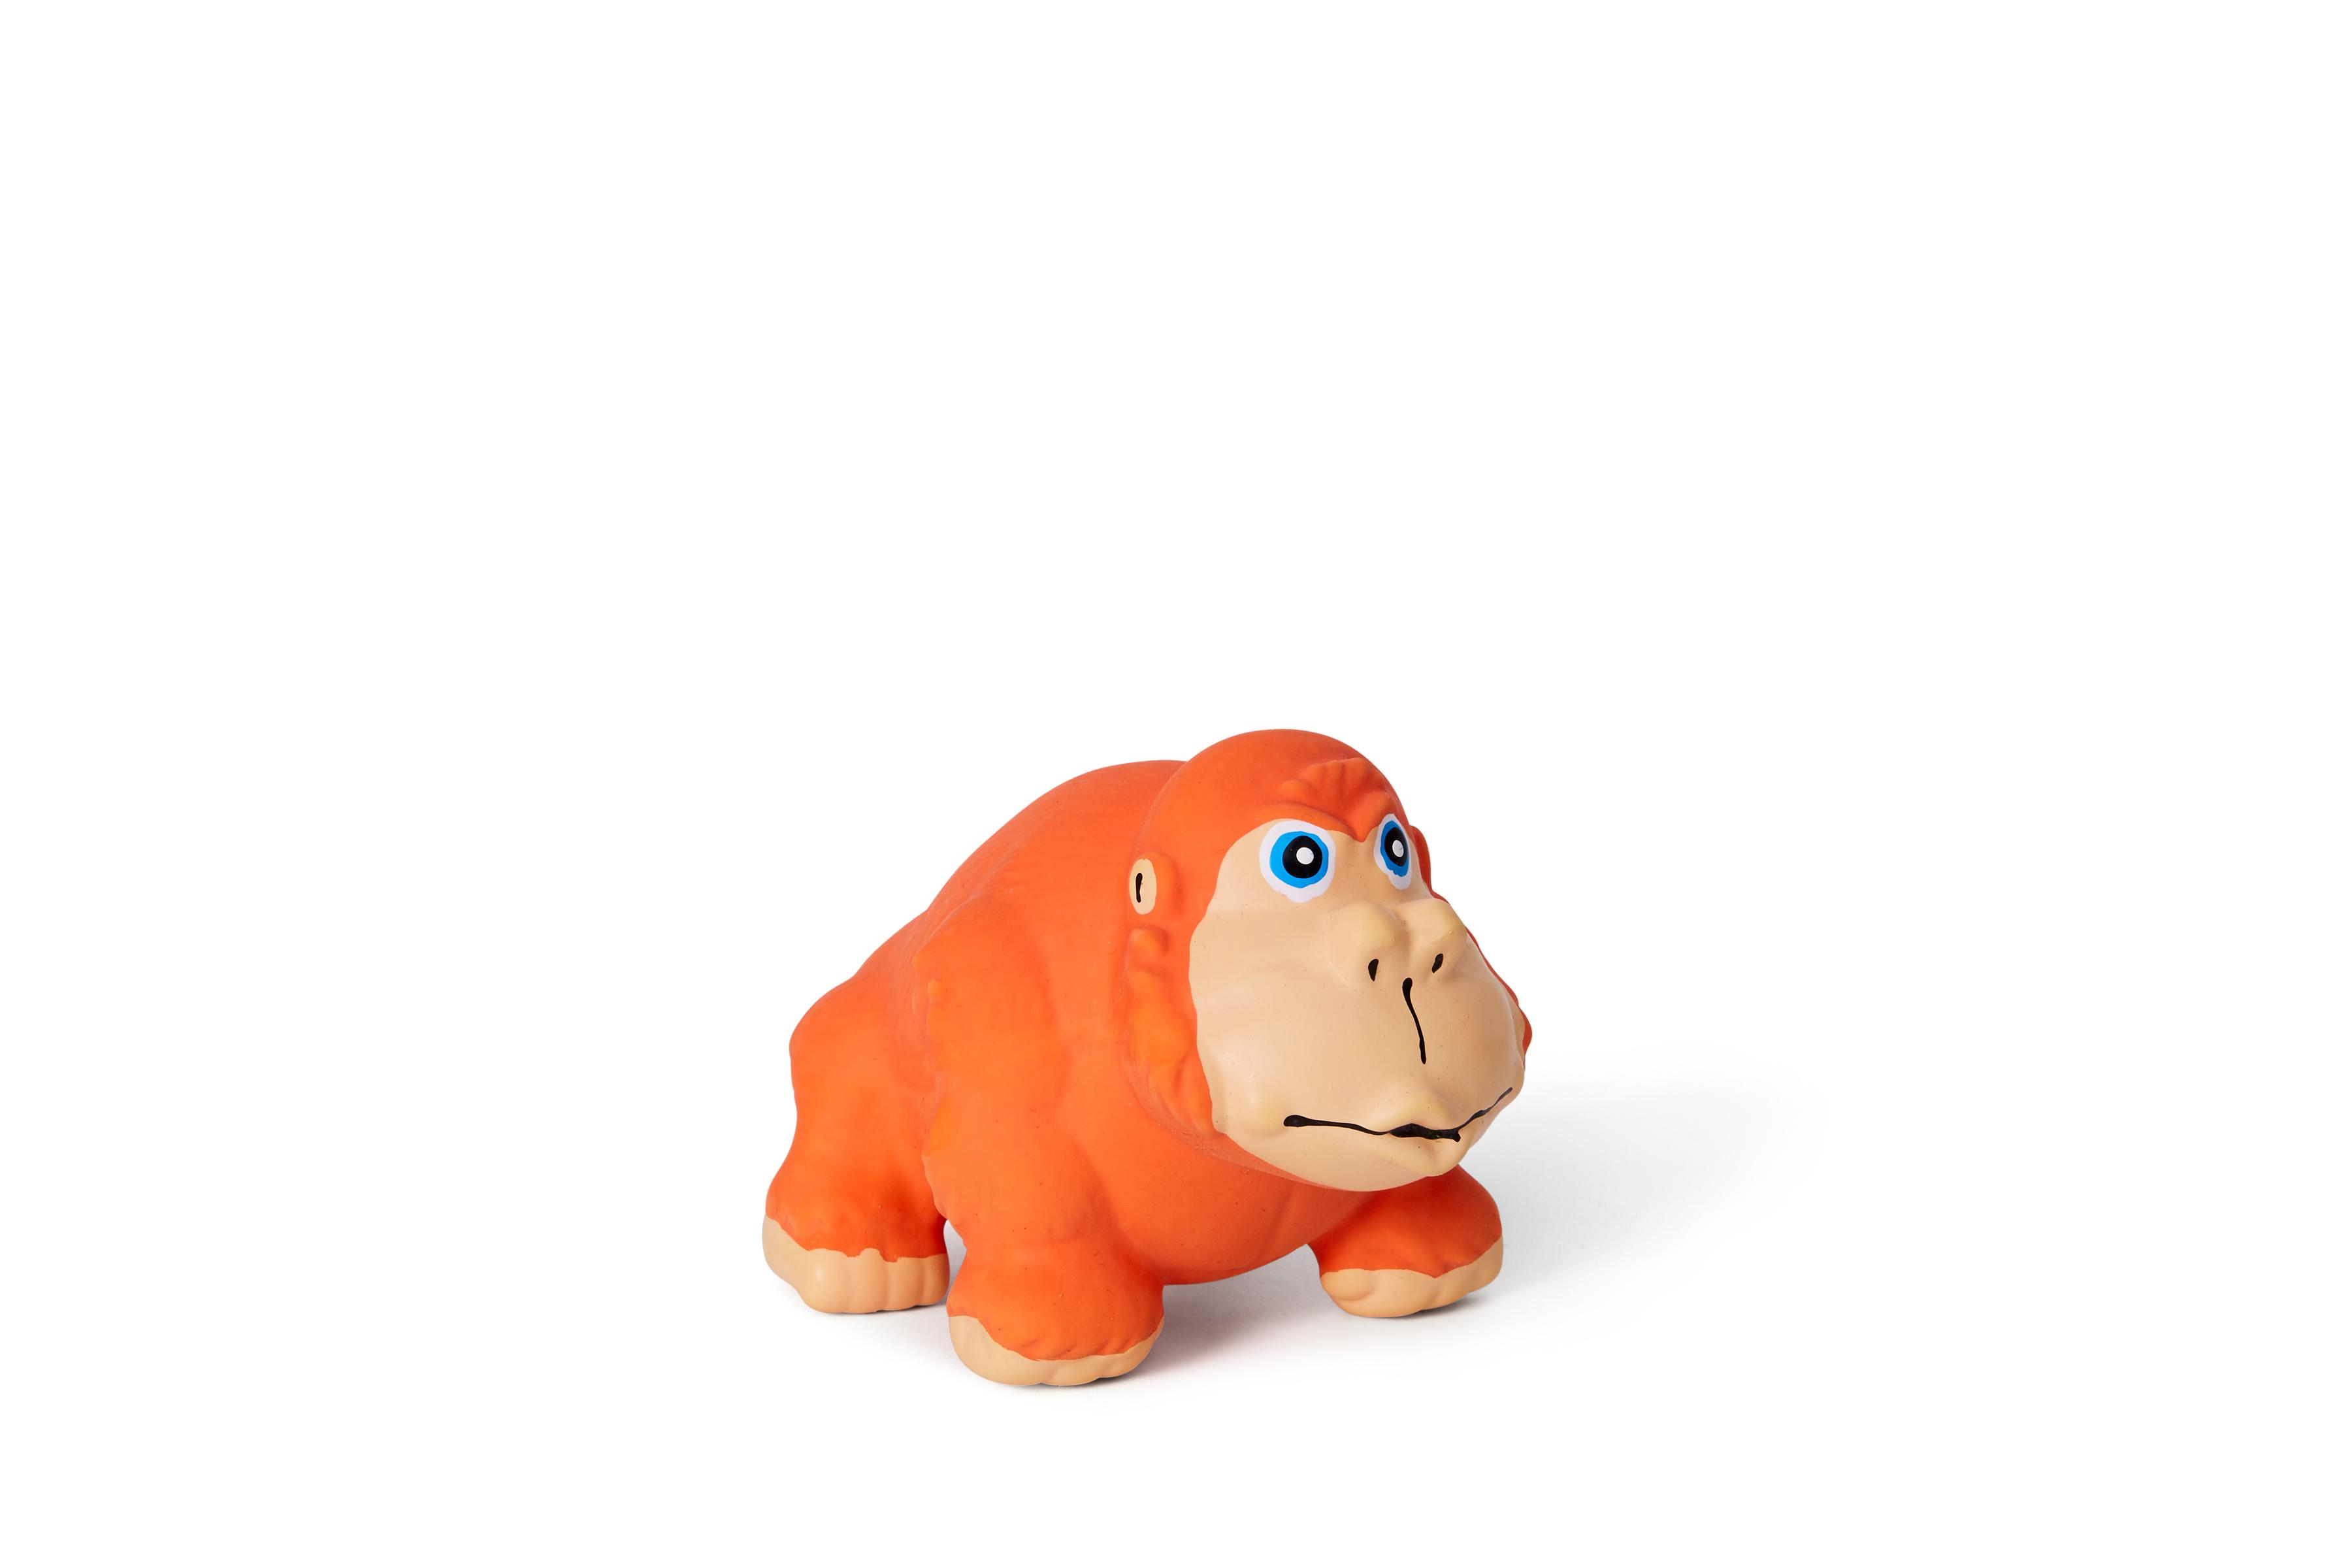 Bud'z Latex Gorilla Squeaker Dog Toy, 11.5-cm